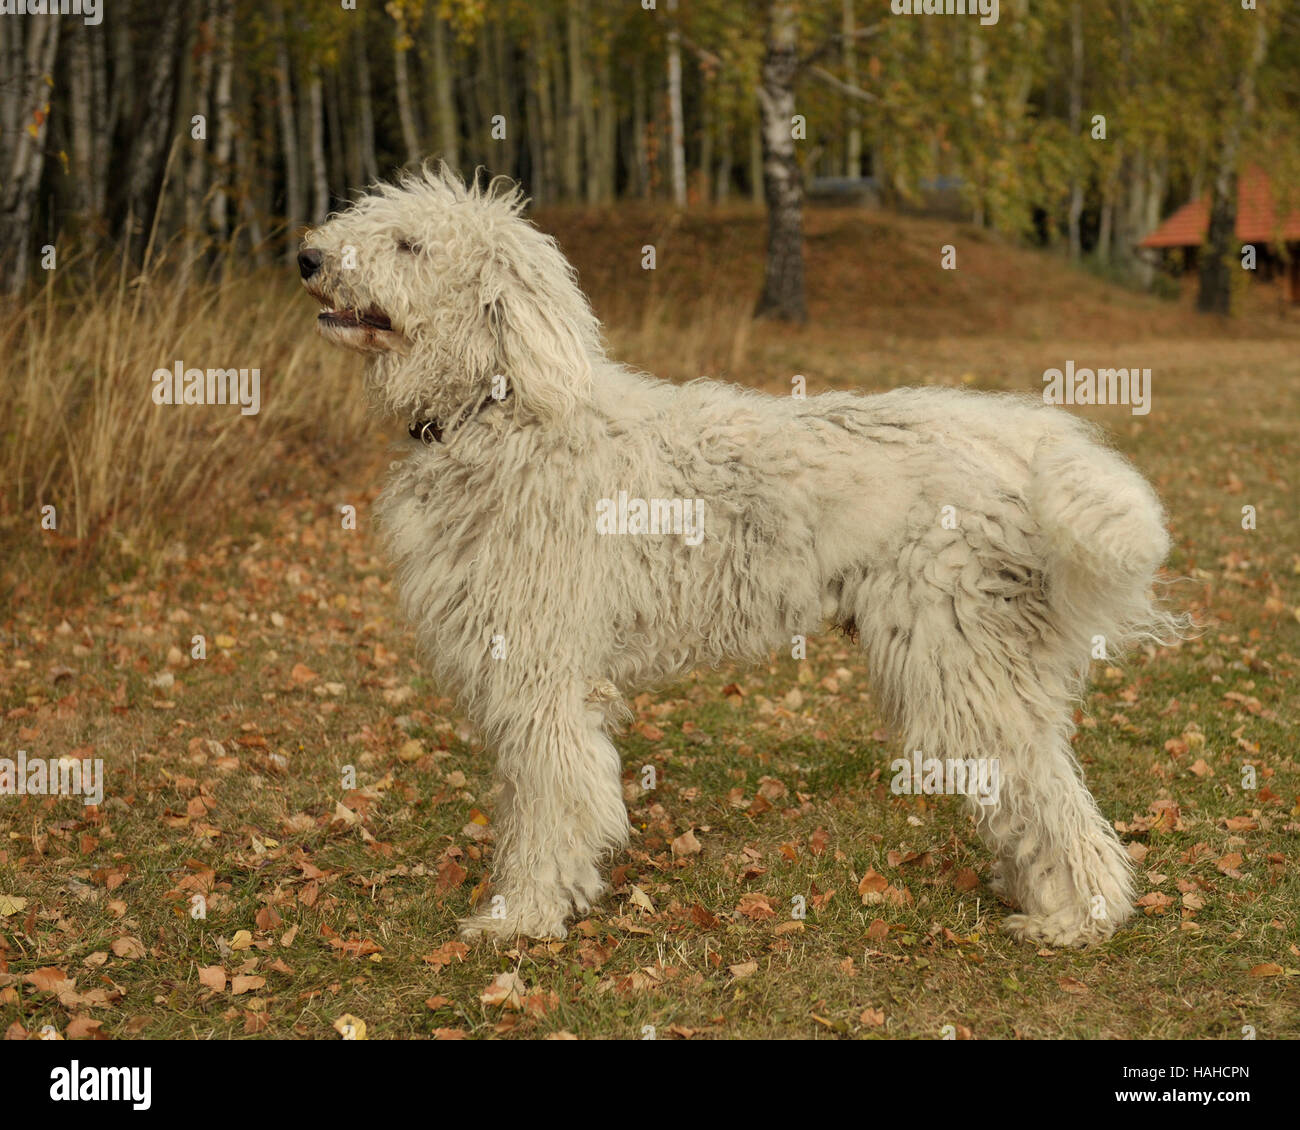 Hungarian komondor after coat clipped off, in hungarian forest - Stock Image